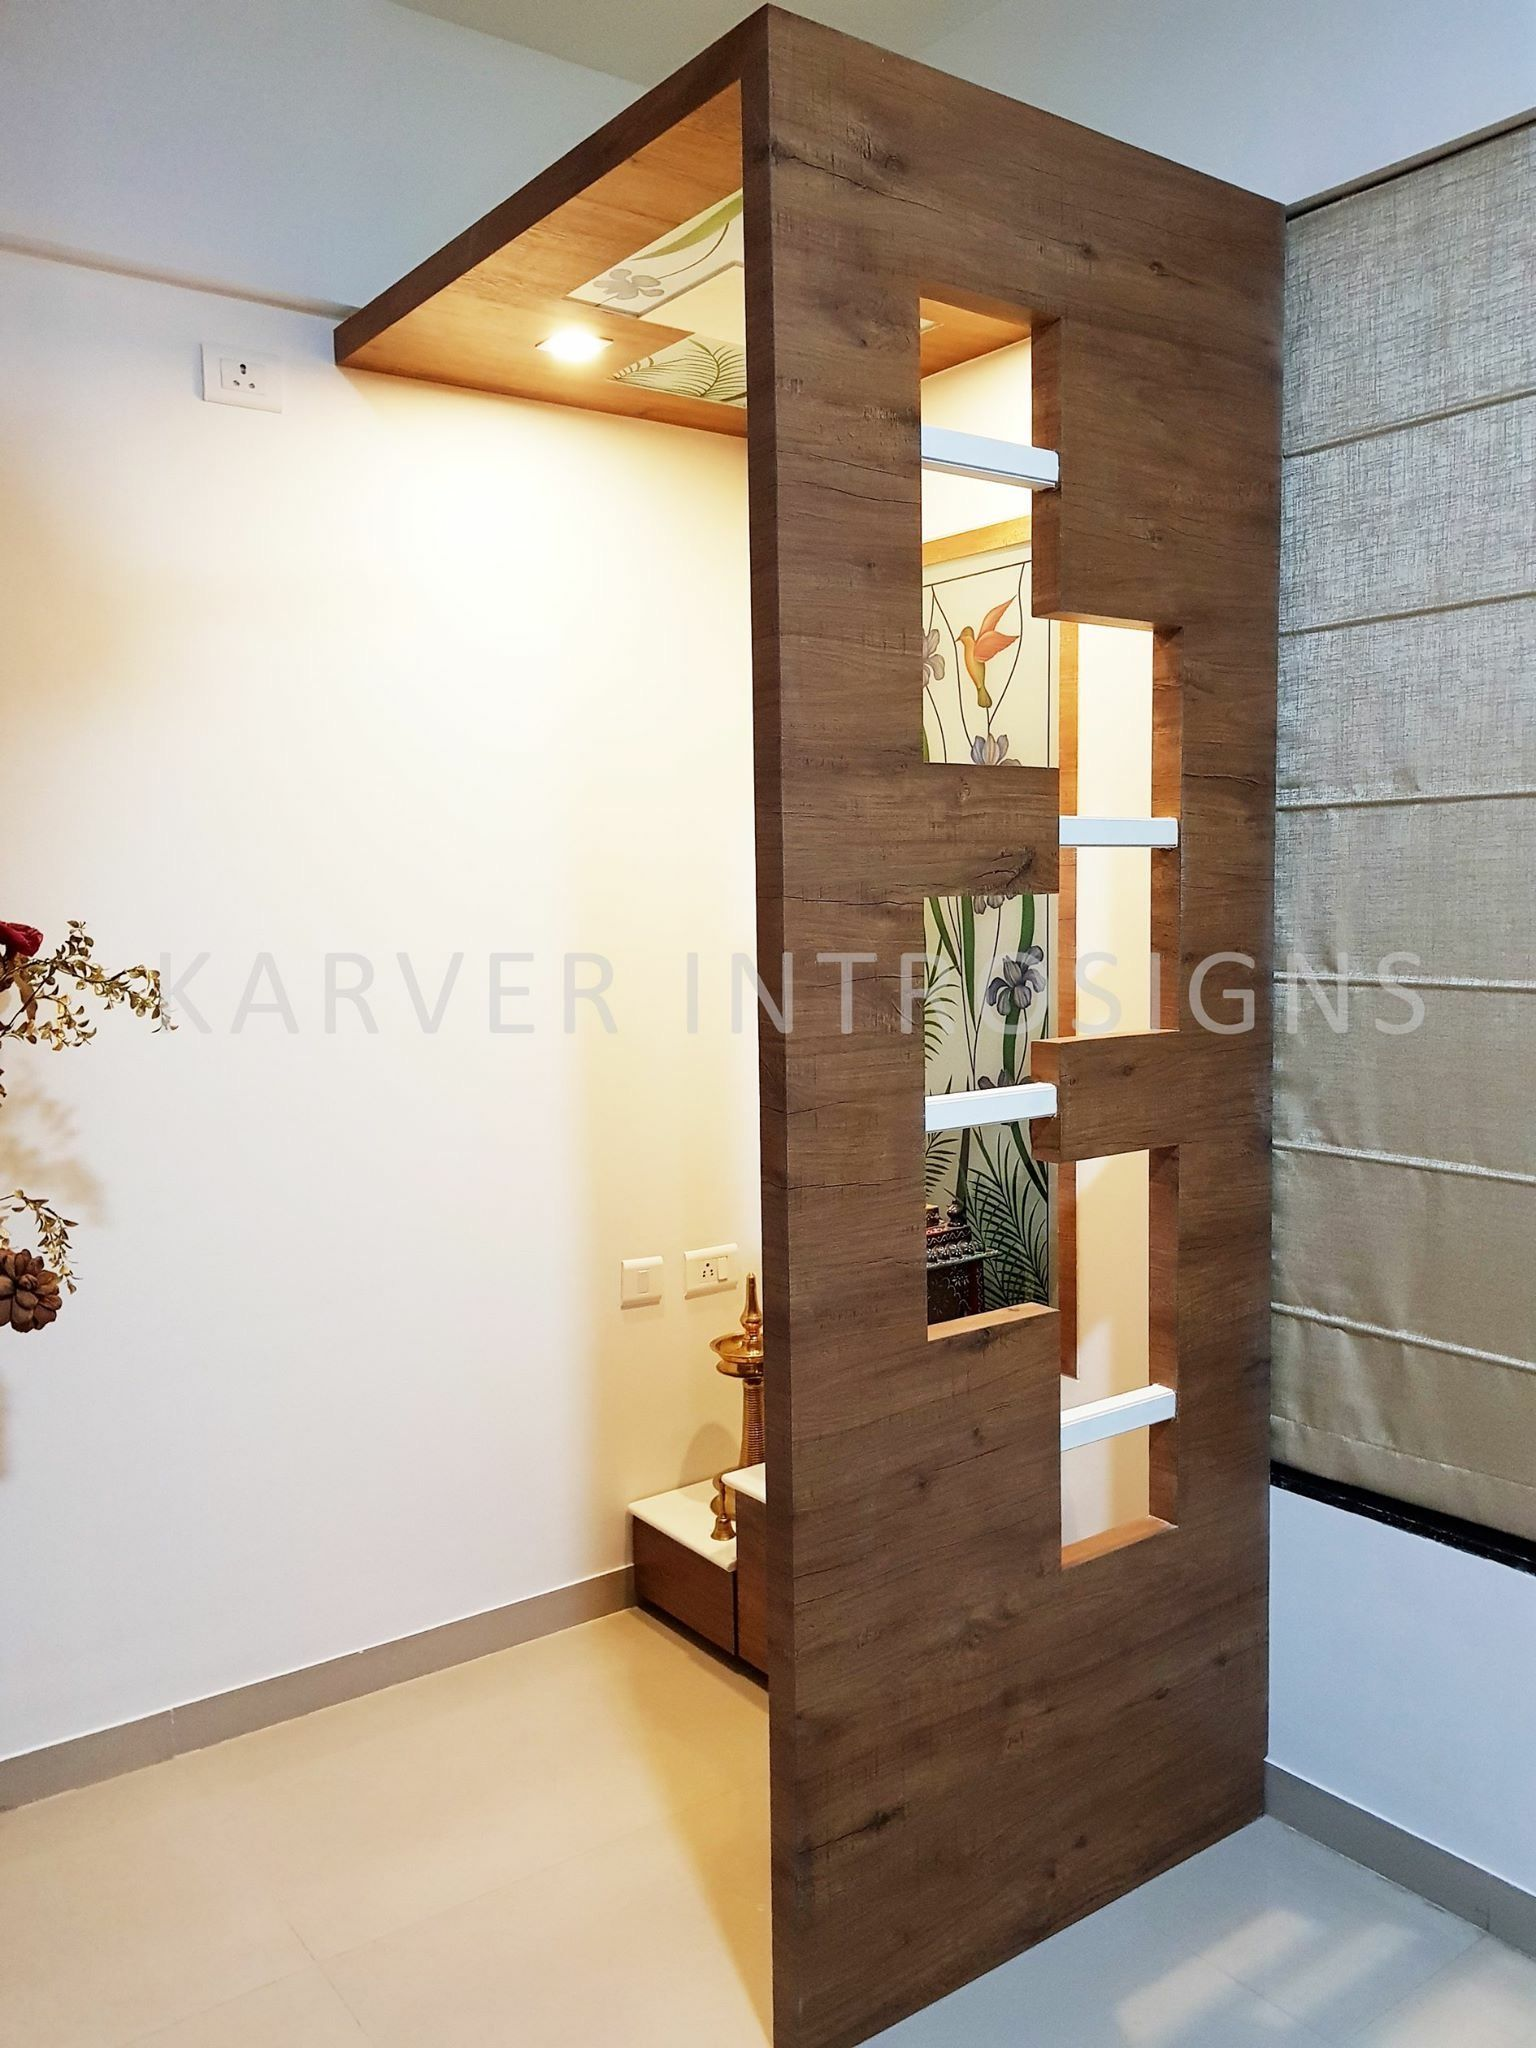 Gallery of sky box house garg architects salvabrani also internal doors best place to buy interior panel rh pinterest